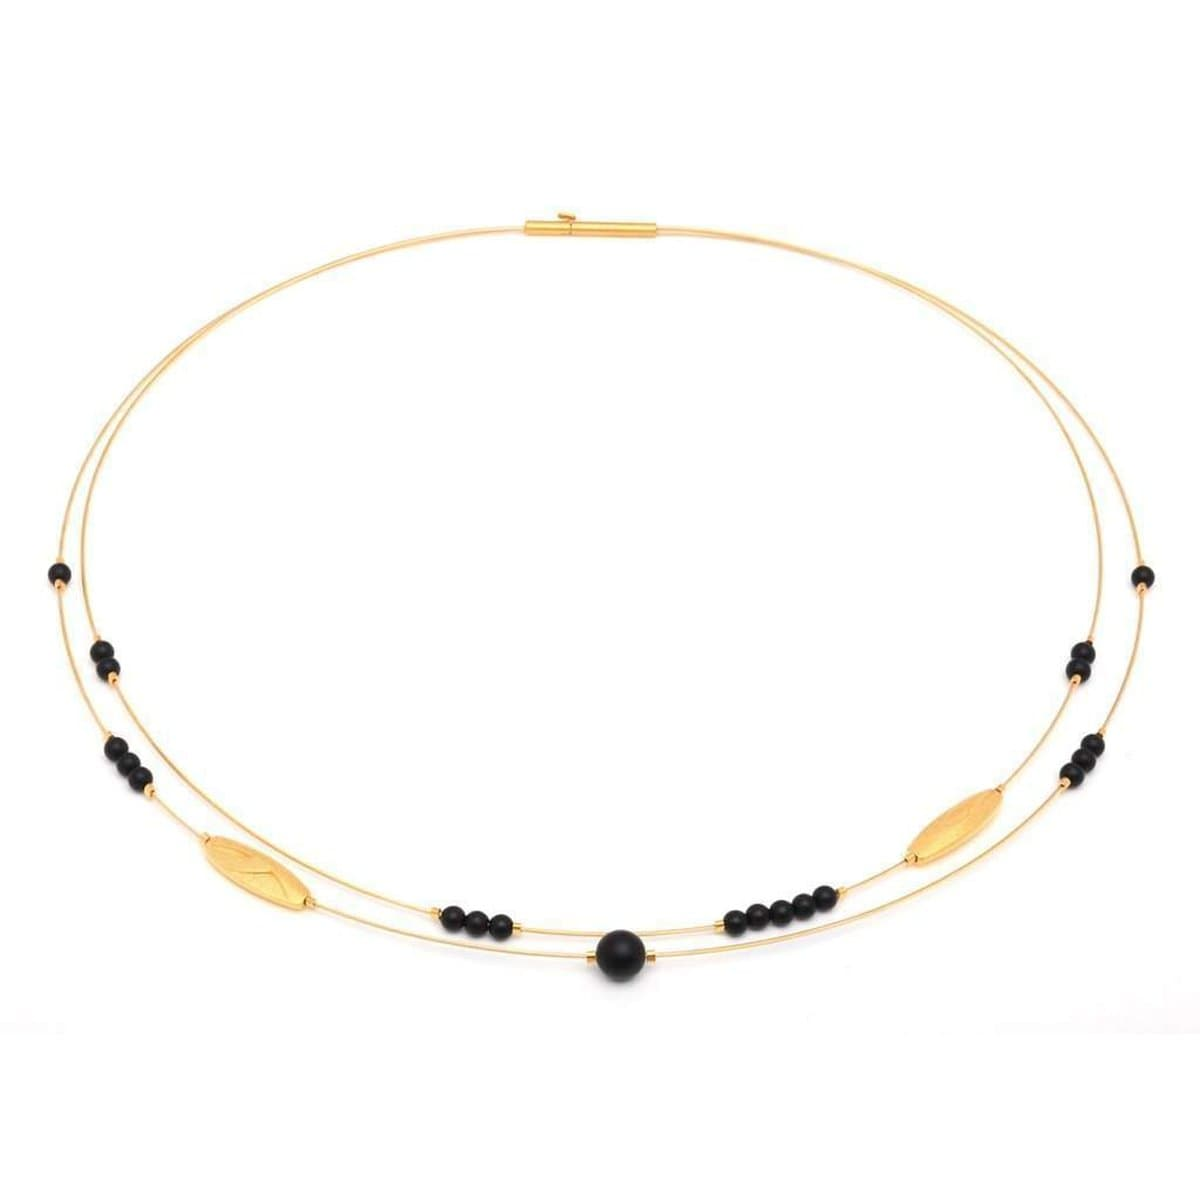 Consa Onyx Necklace - 85079896-Bernd Wolf-Renee Taylor Gallery